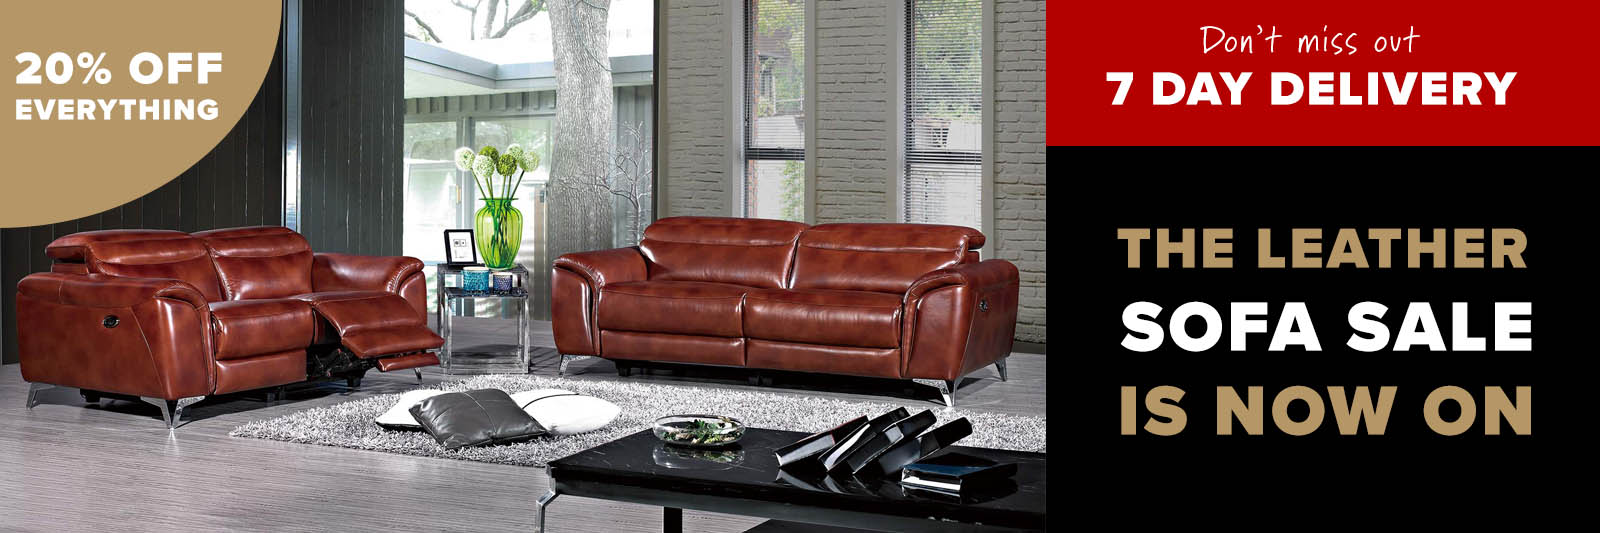 Leather sofas delivered within 7 days